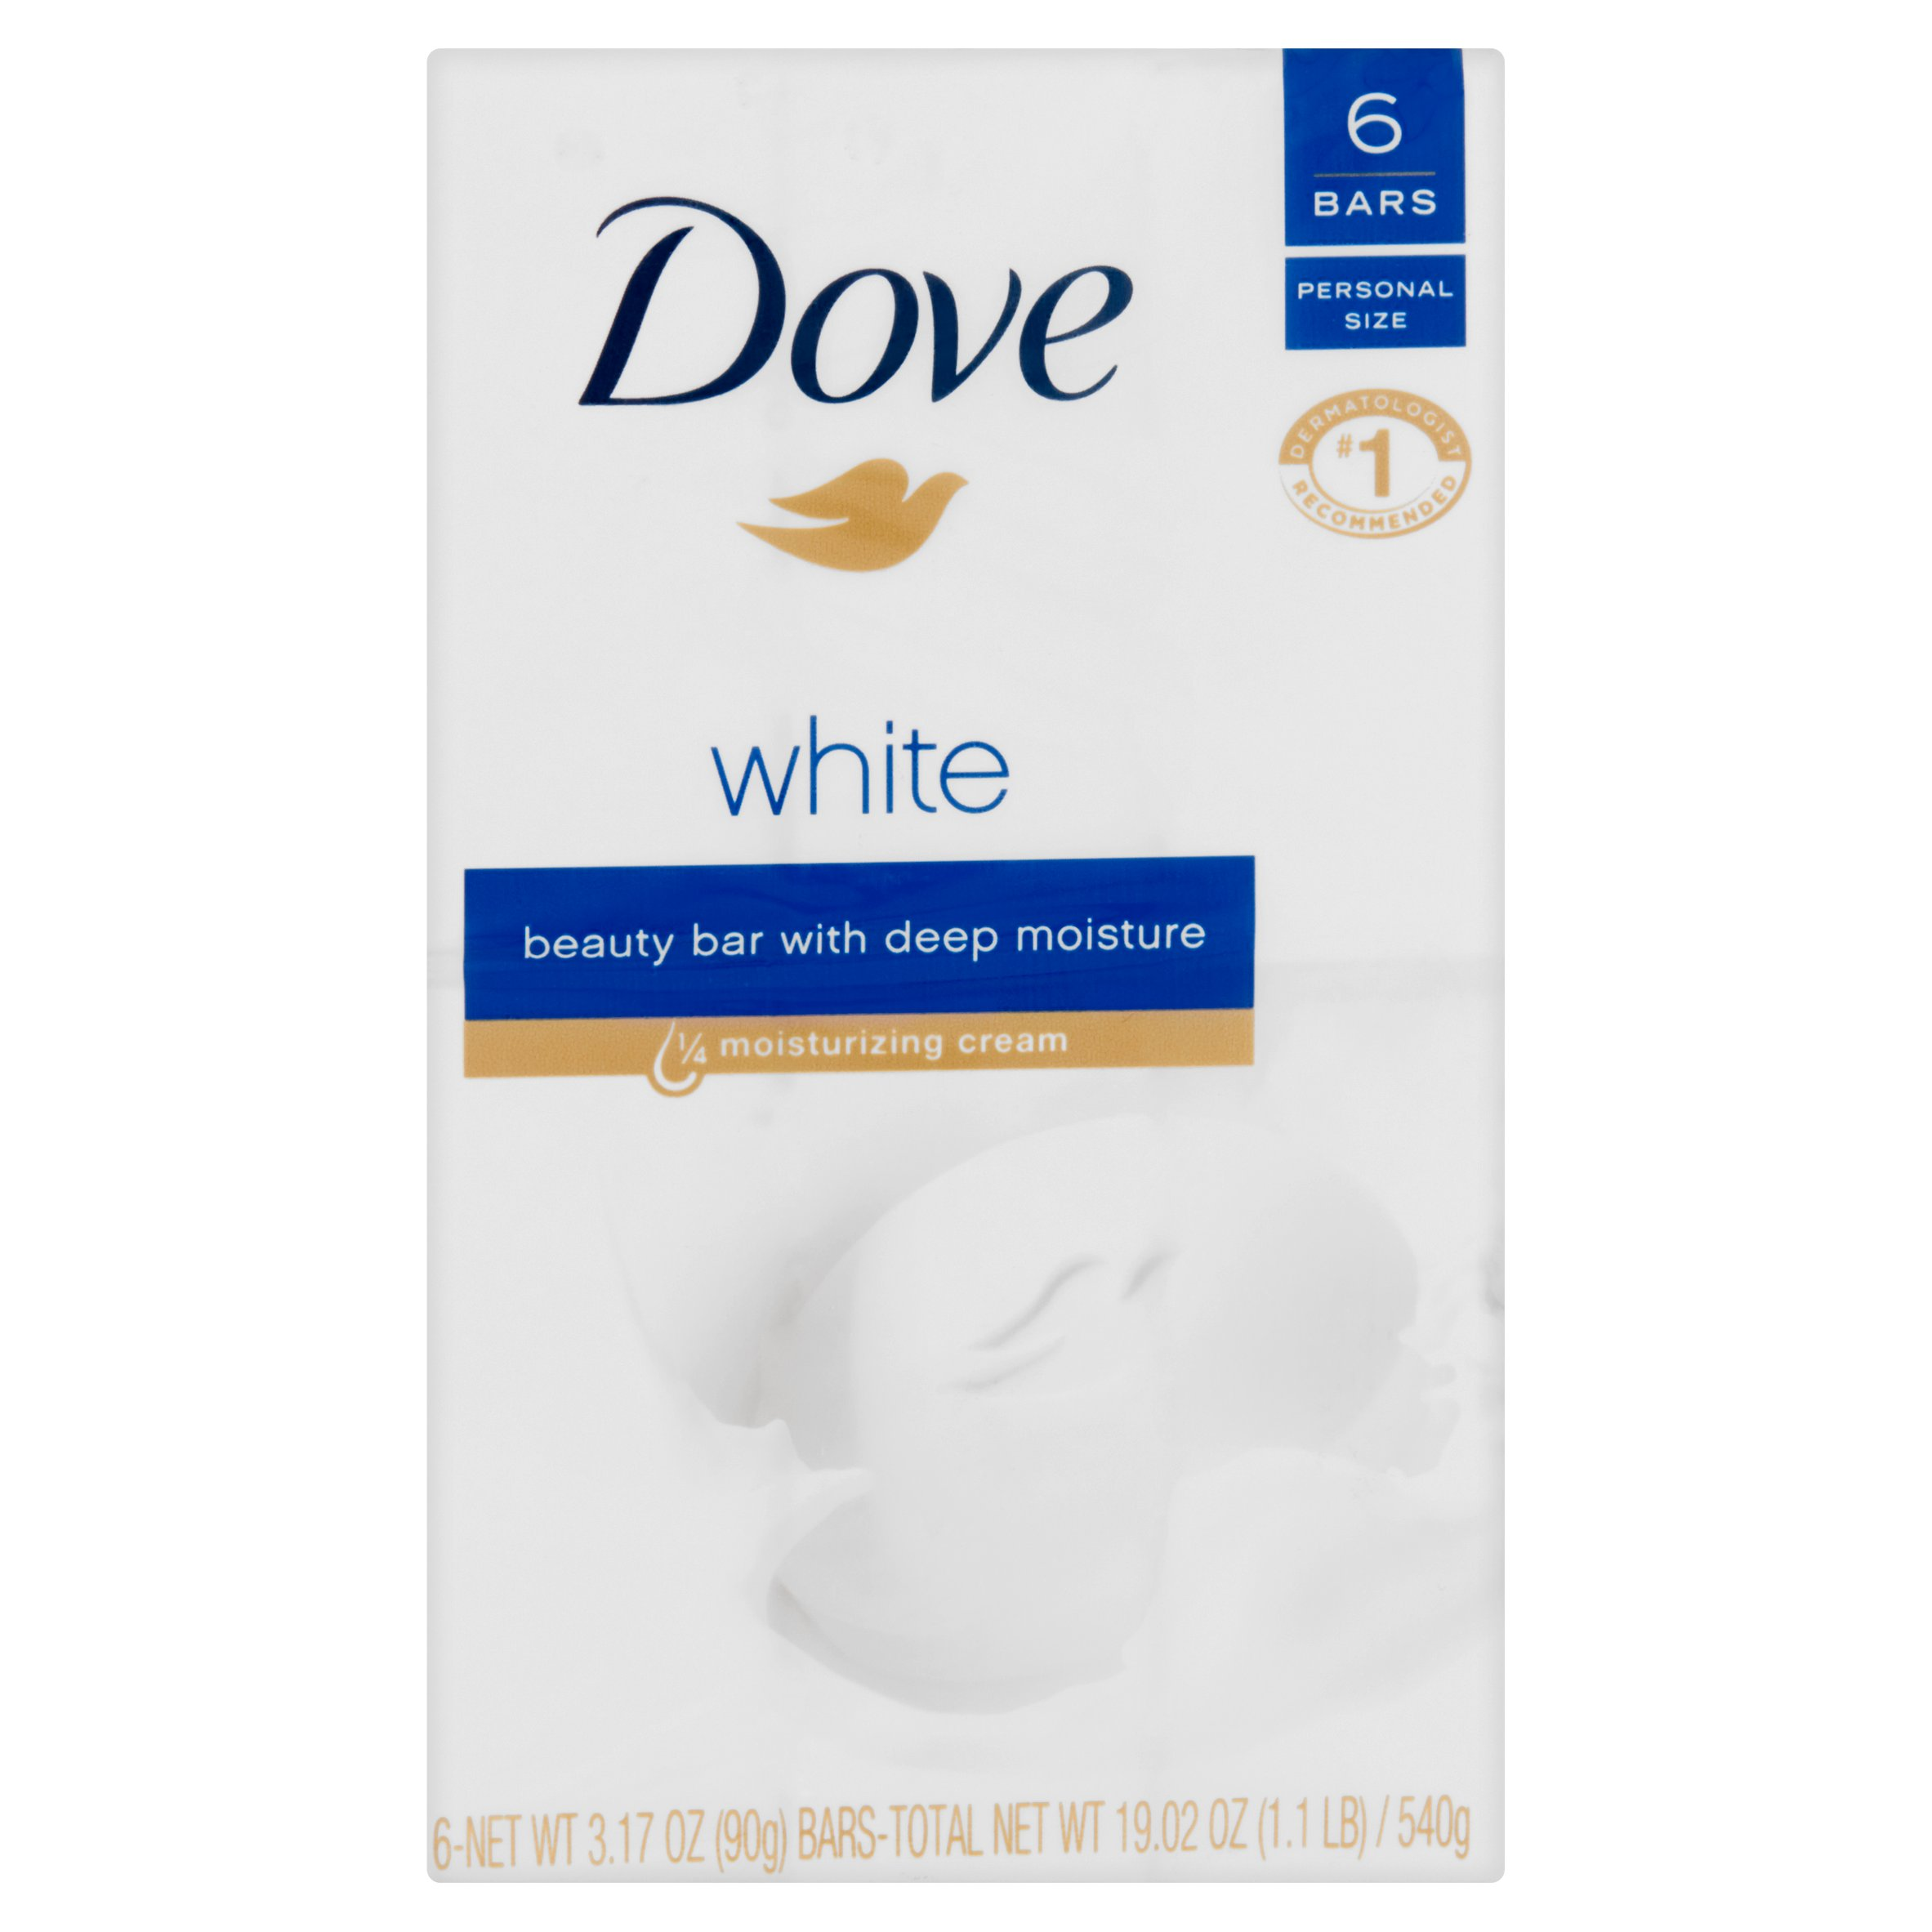 Dove White Beauty Bar with 1/4 Moisturizing Cream 3.15 oz, 6 bar